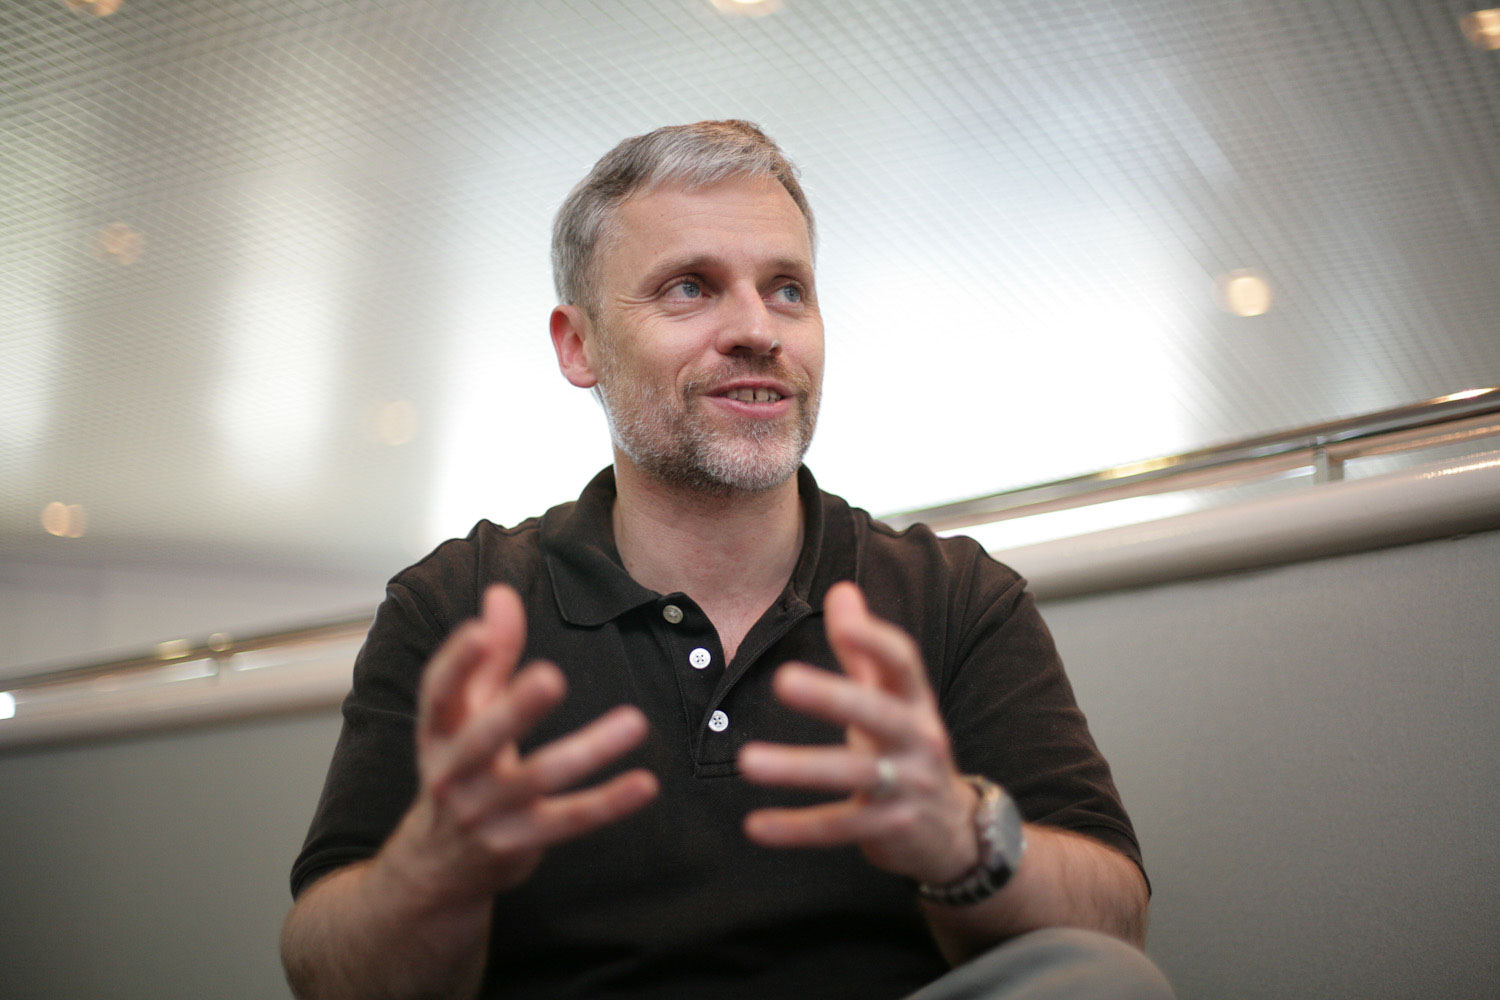 Damian Conway is a prominent member of Perl community, a proponent of object-oriented programming, and the author of several books.